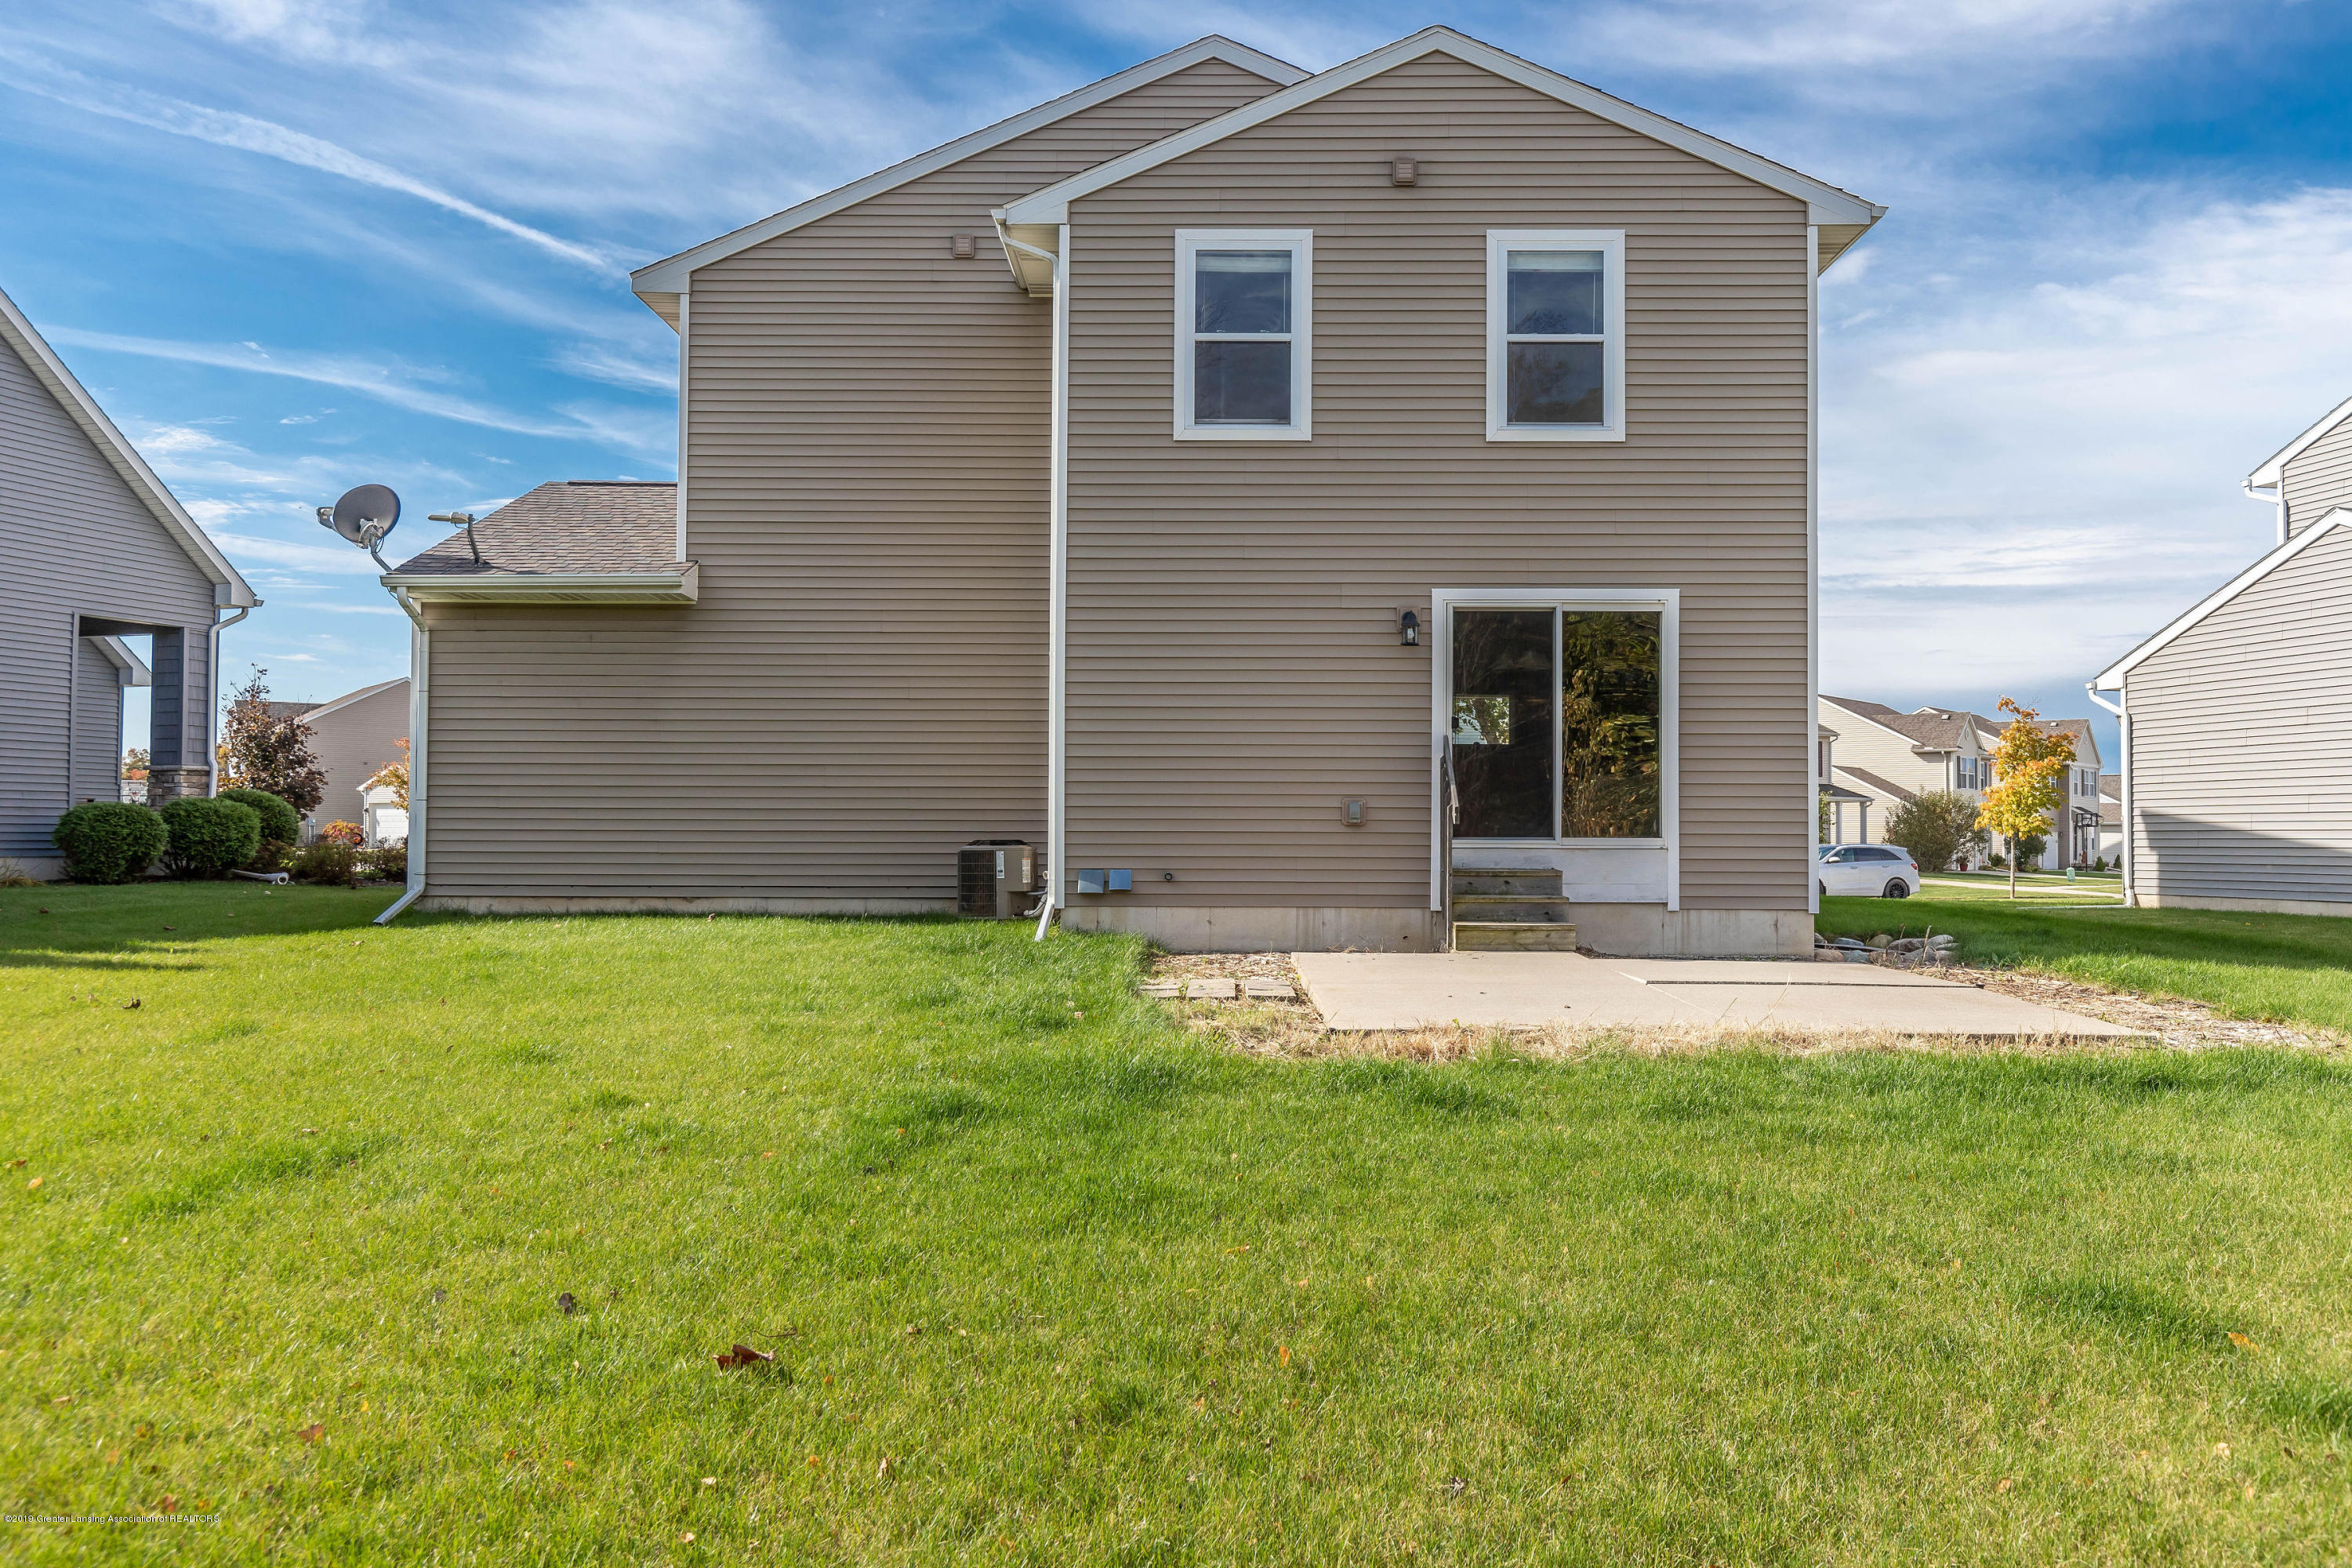 15125 Loxley Ln - loxleyback3(1of1) - 29